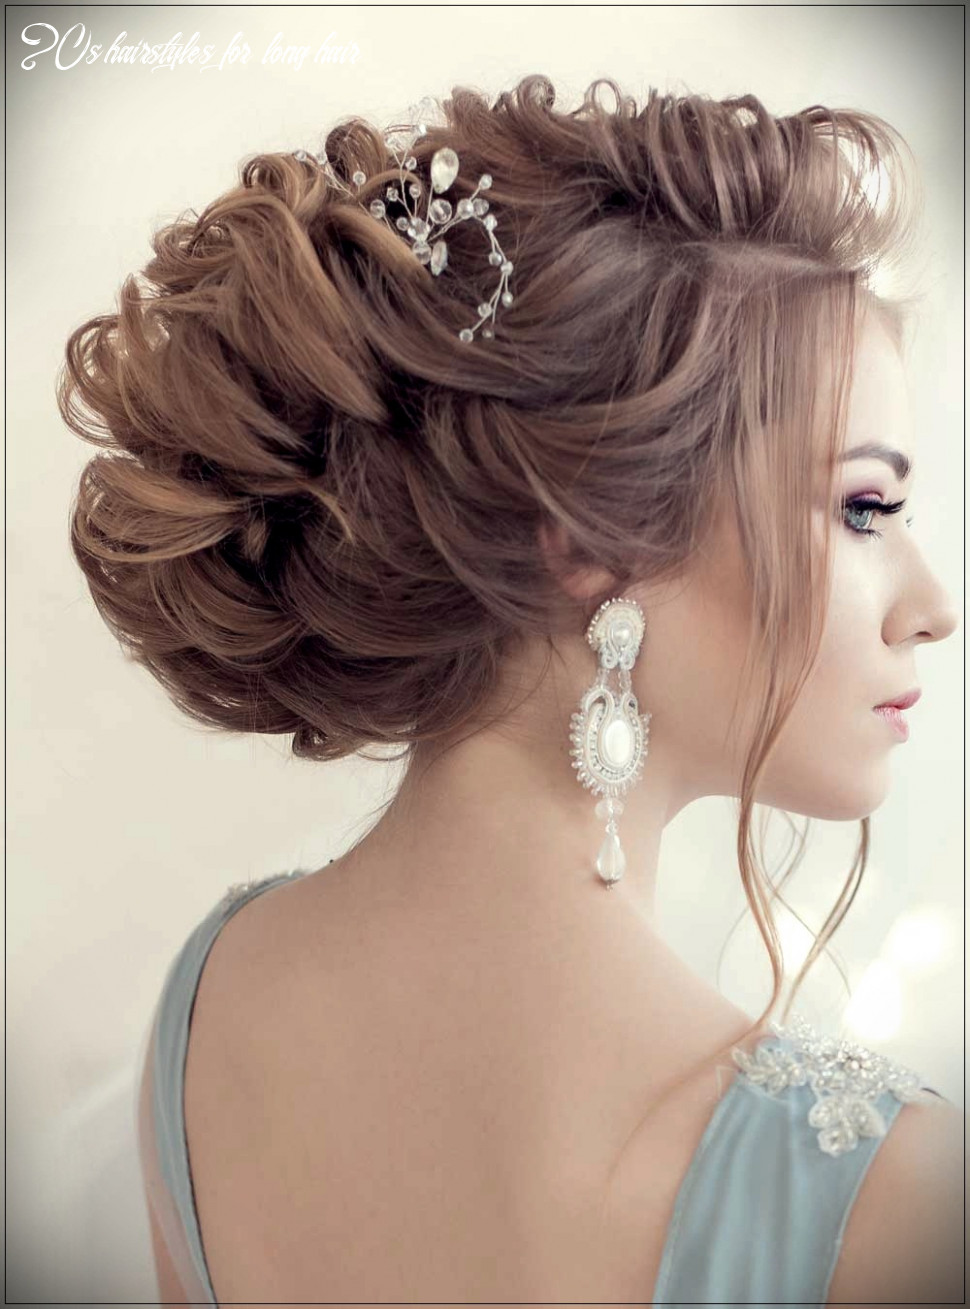 Hairstyles for long hair: easy ideas and fast!   20s hairstyles for long hair